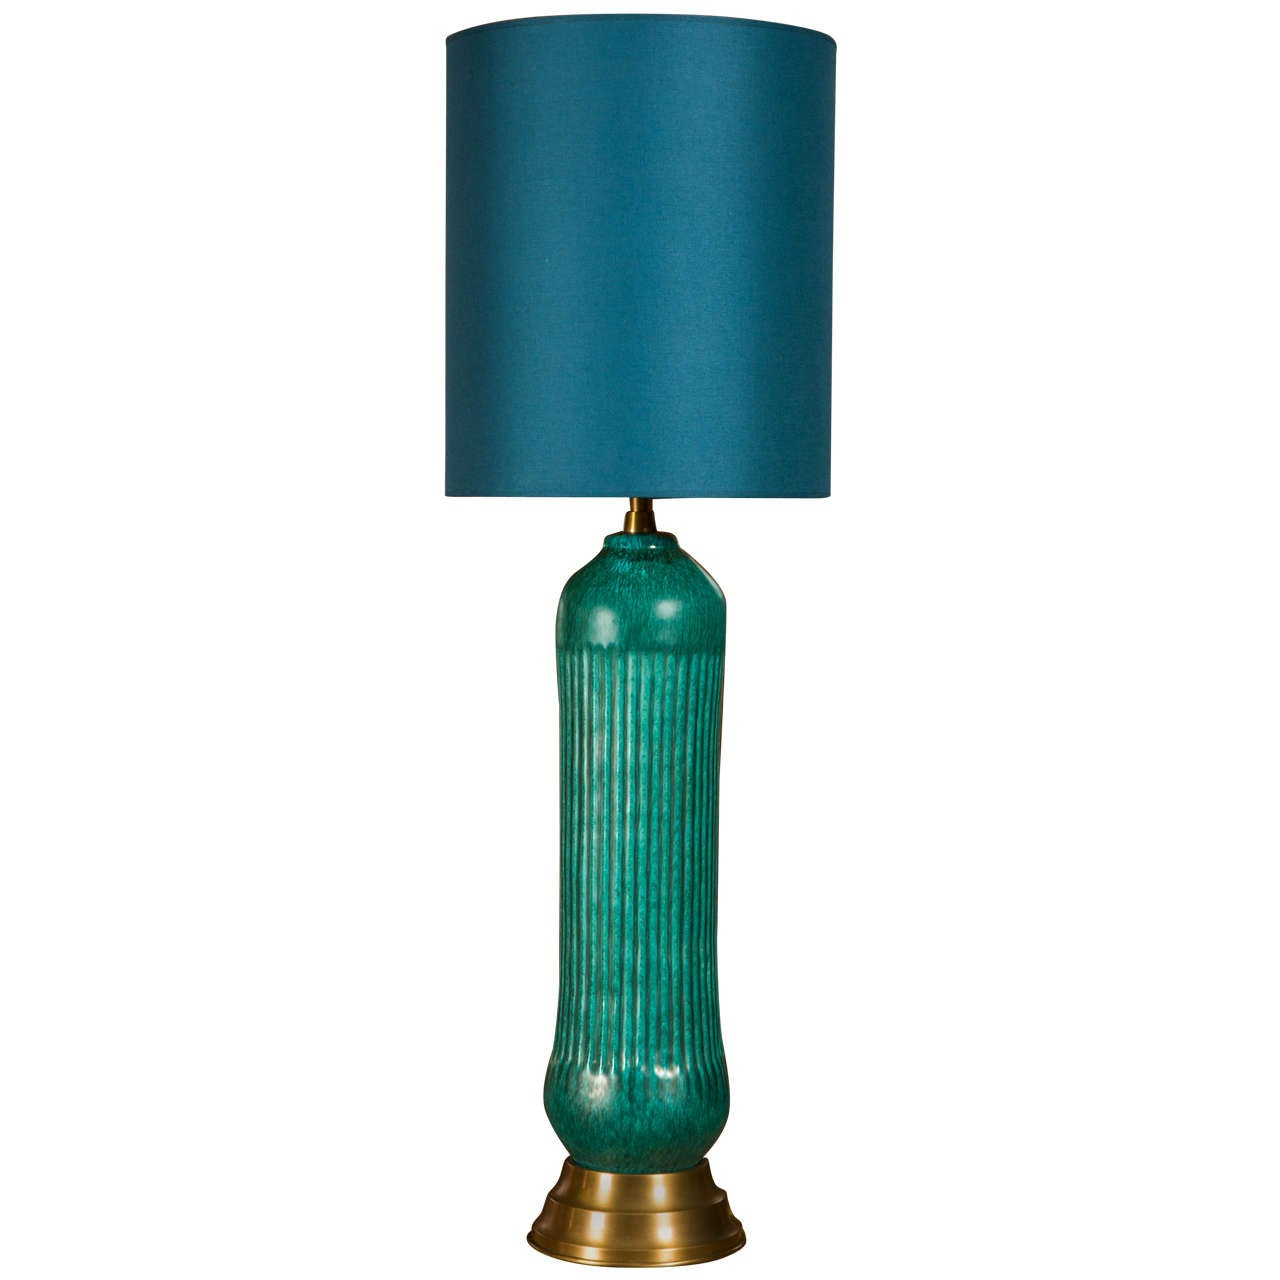 turquoise overstock harriett free today shipping garden lamp table home product